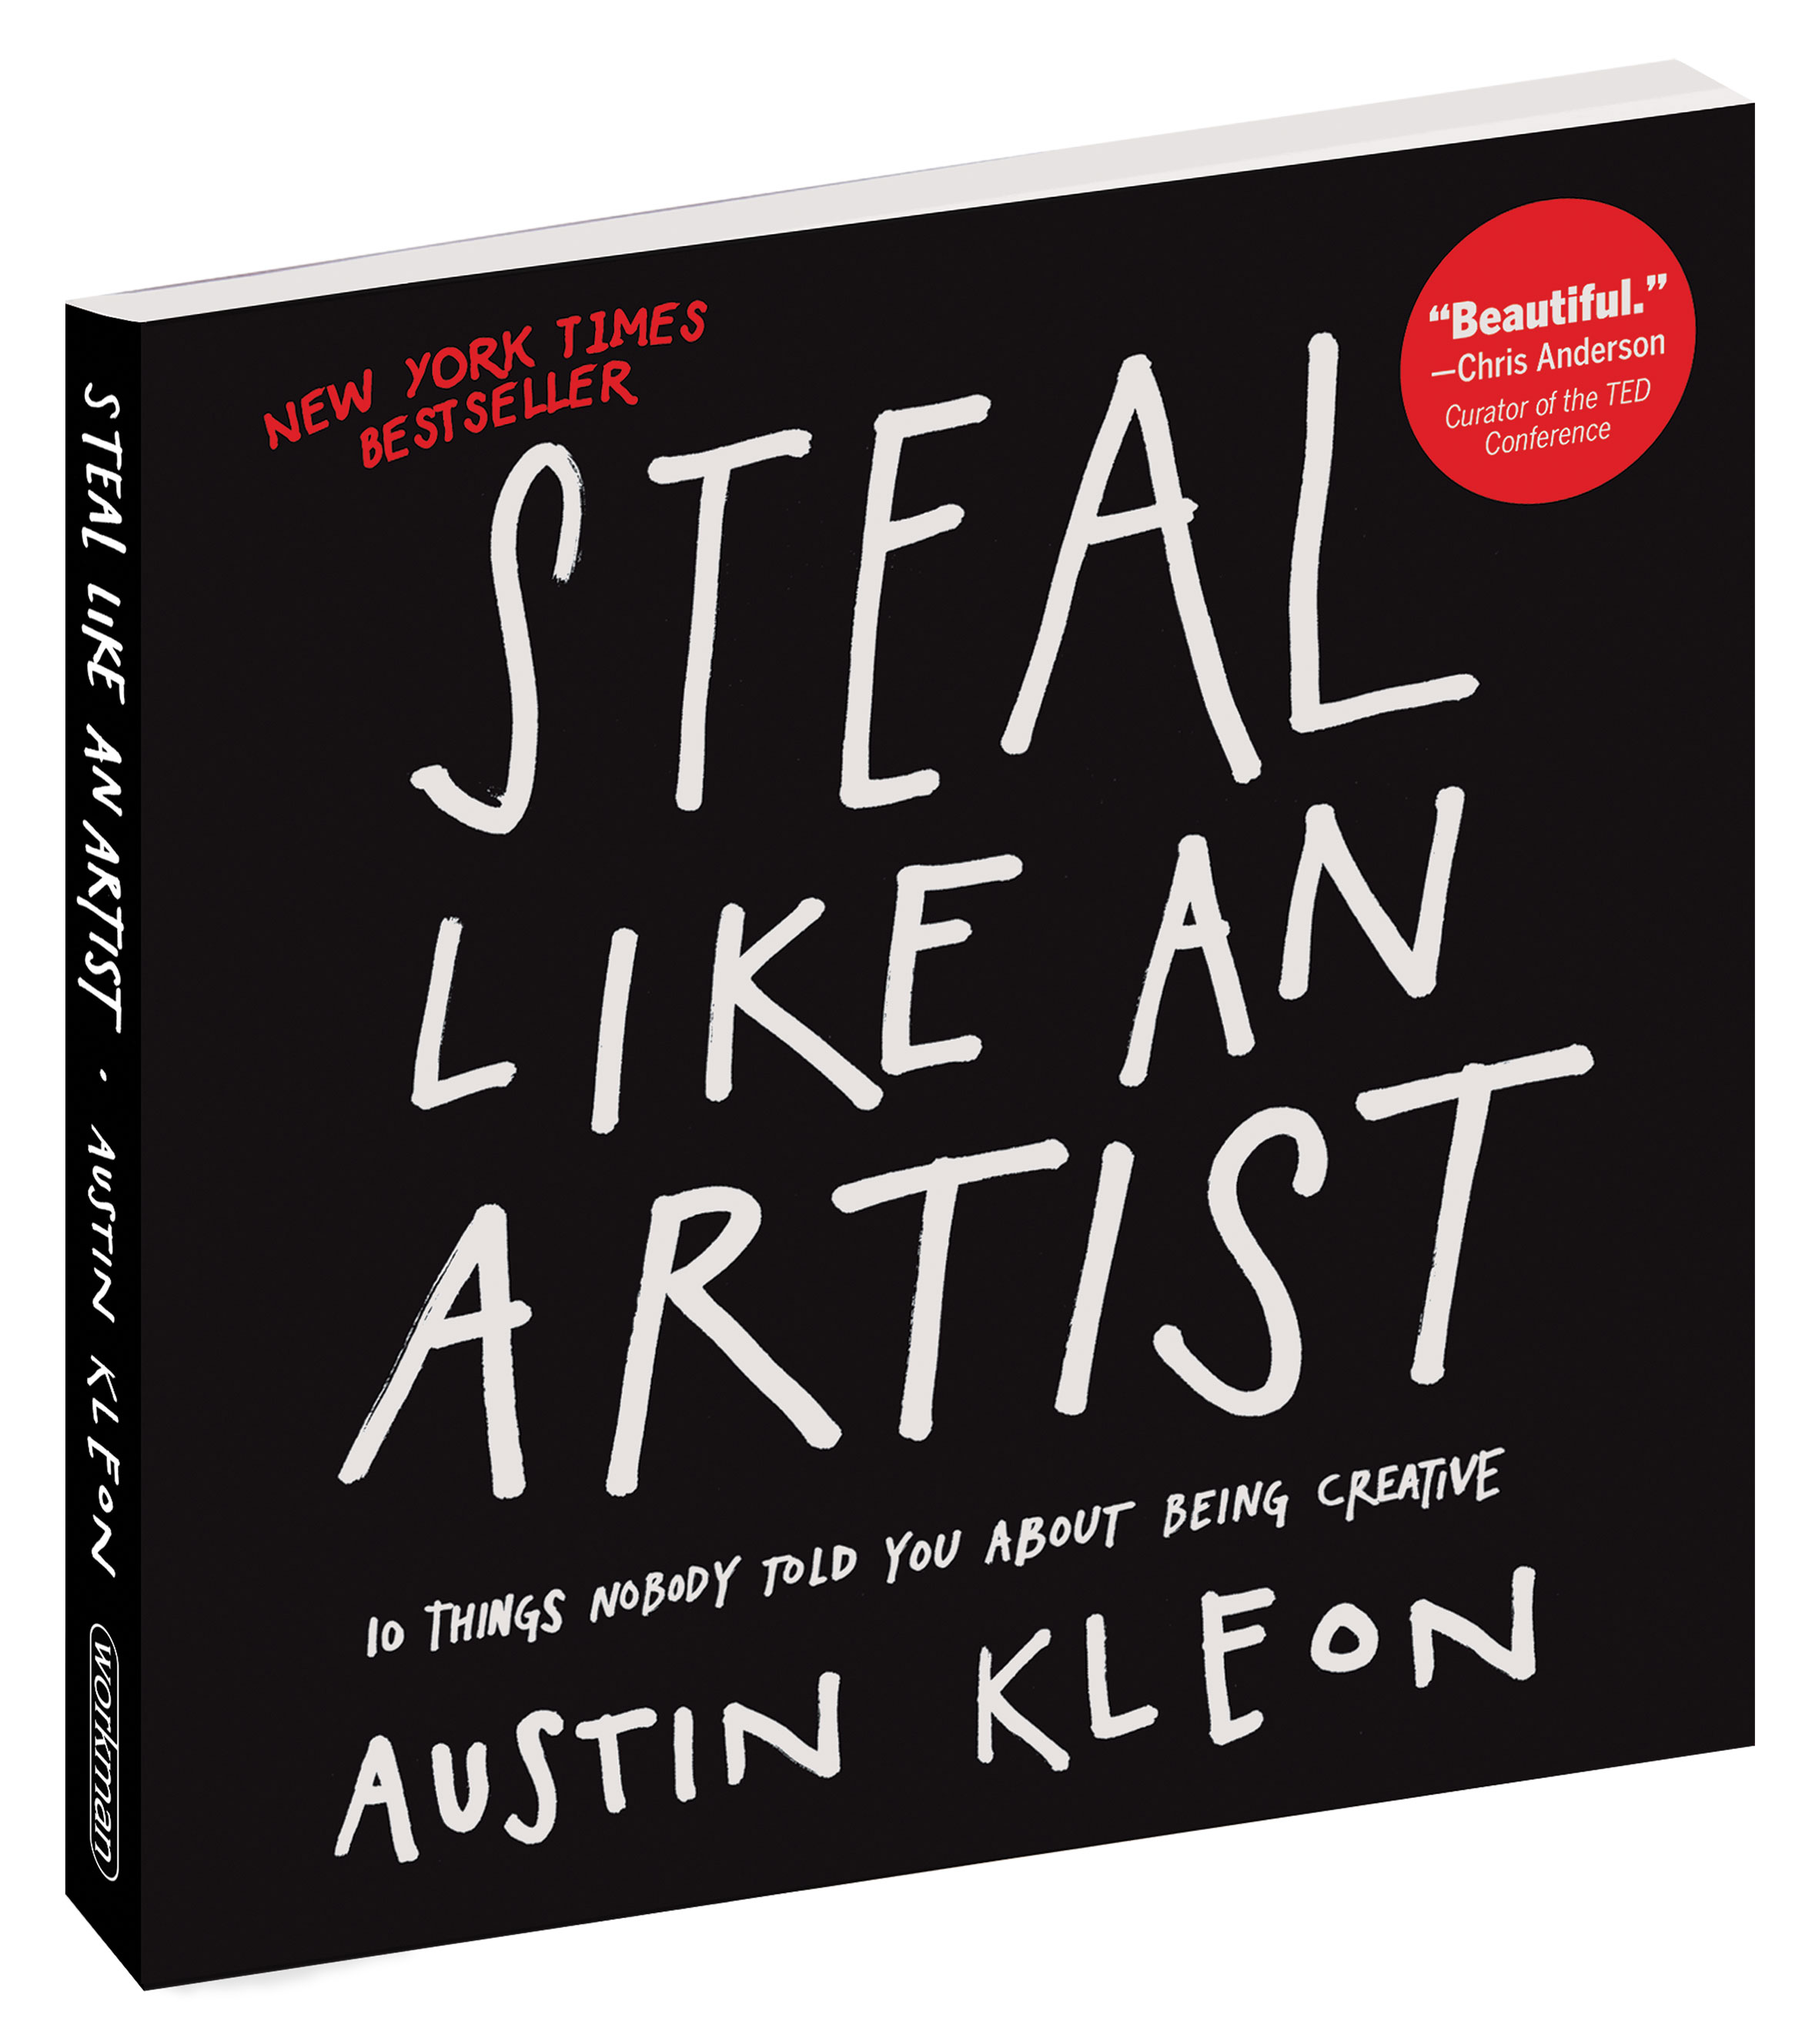 Libros Best Seller Steal Like An Artist A Book By Austin Kleon Austin Kleon